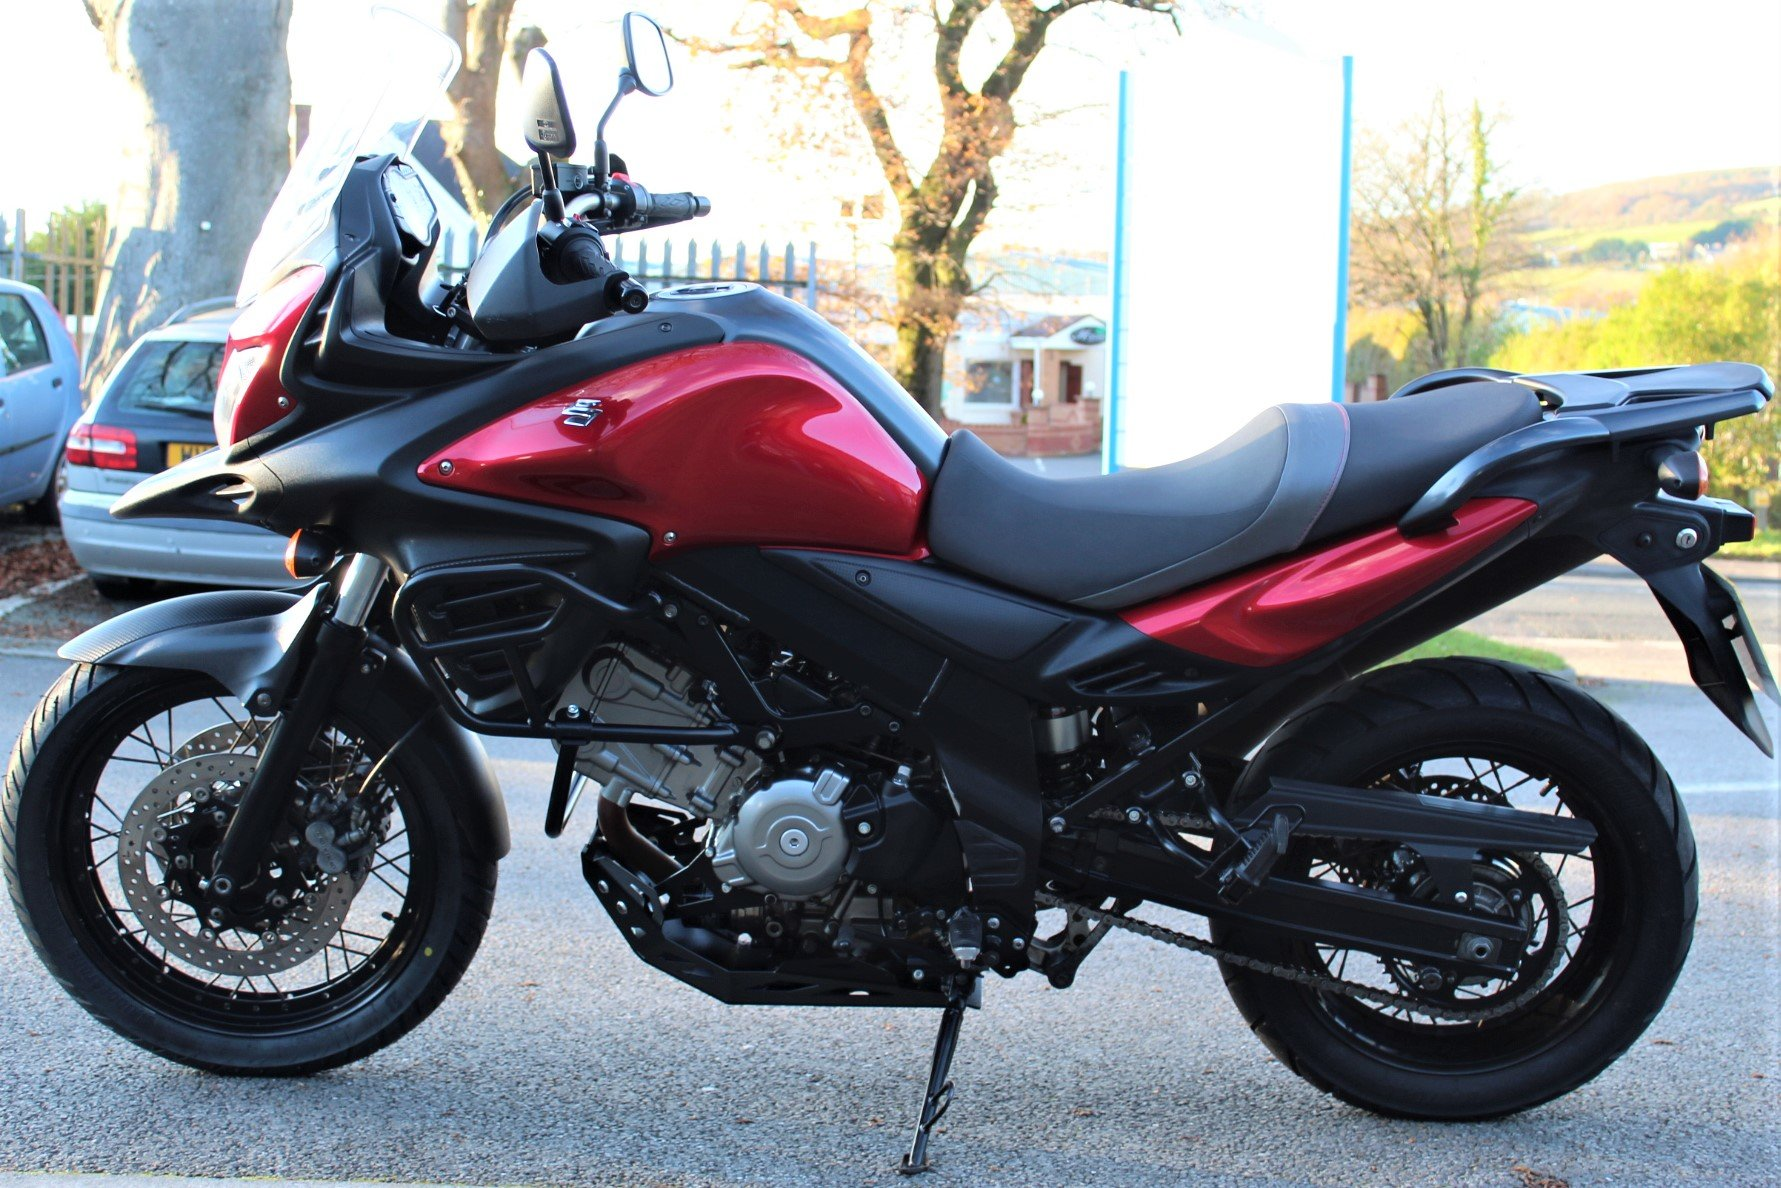 2016 16 Suzuki DL650 AL6 V-Strom Adventure For Sale (picture 4 of 6)